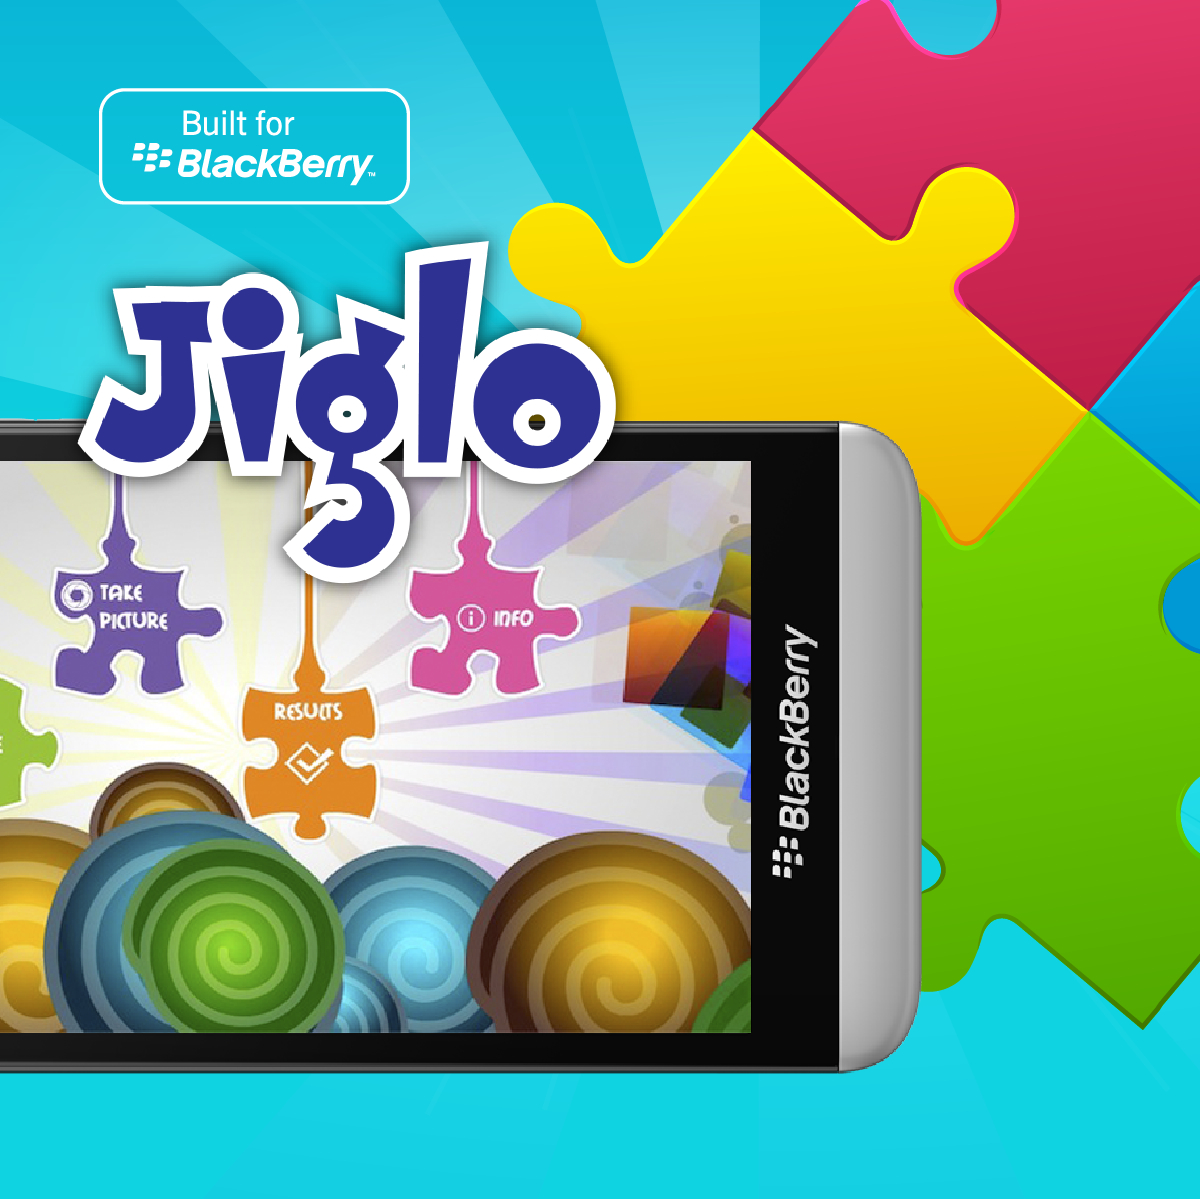 How Jiglo on BlackBerry is a puzzle game done right [Sponsored]